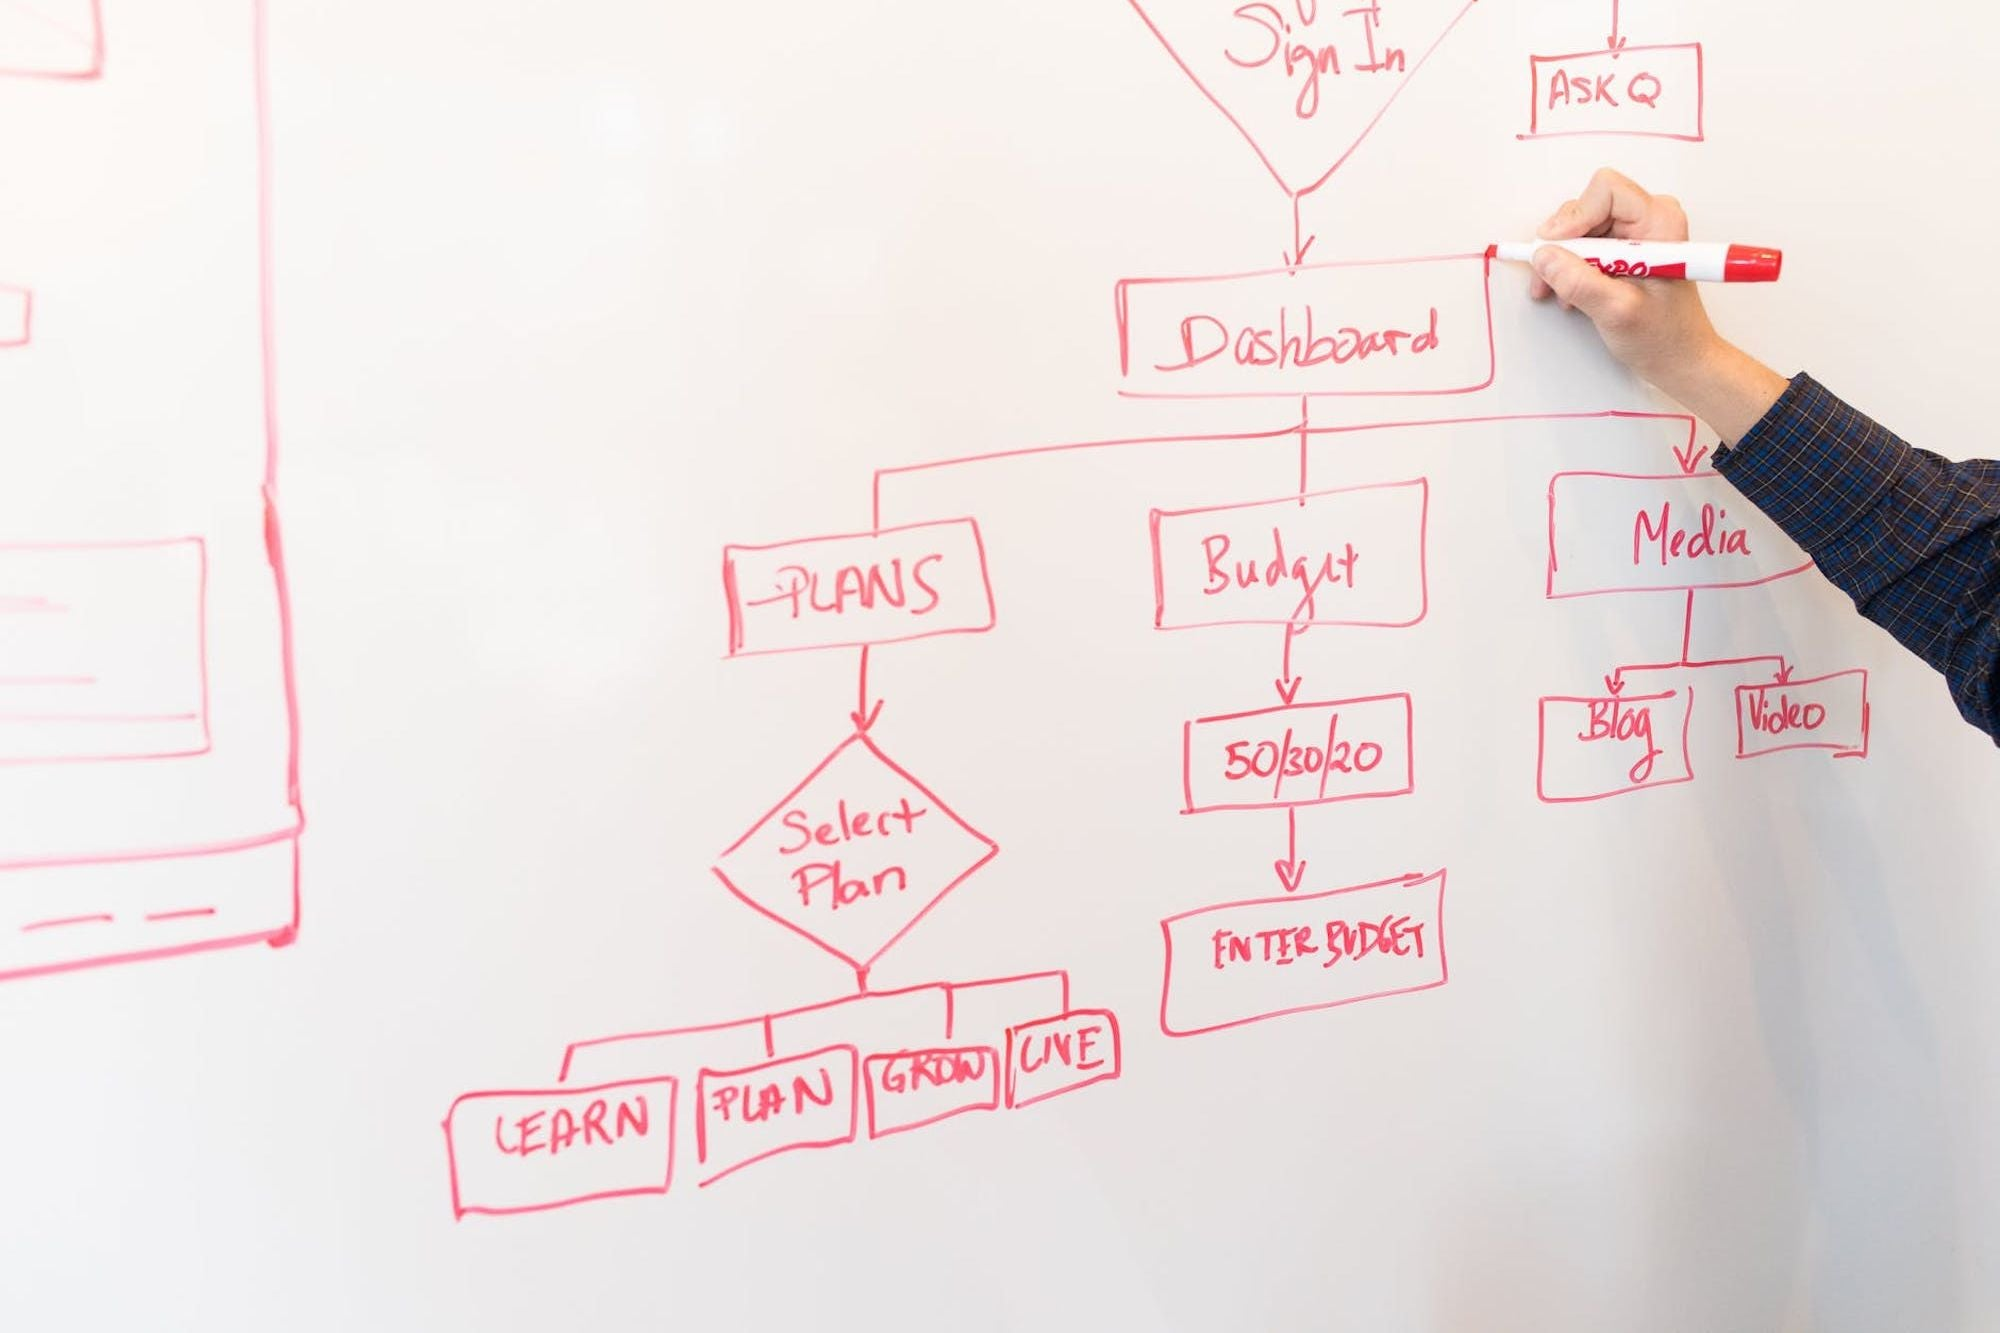 Need a Virtual Whiteboard? This Top-Rated Flowchart Tool Is Great for Working Remotely.